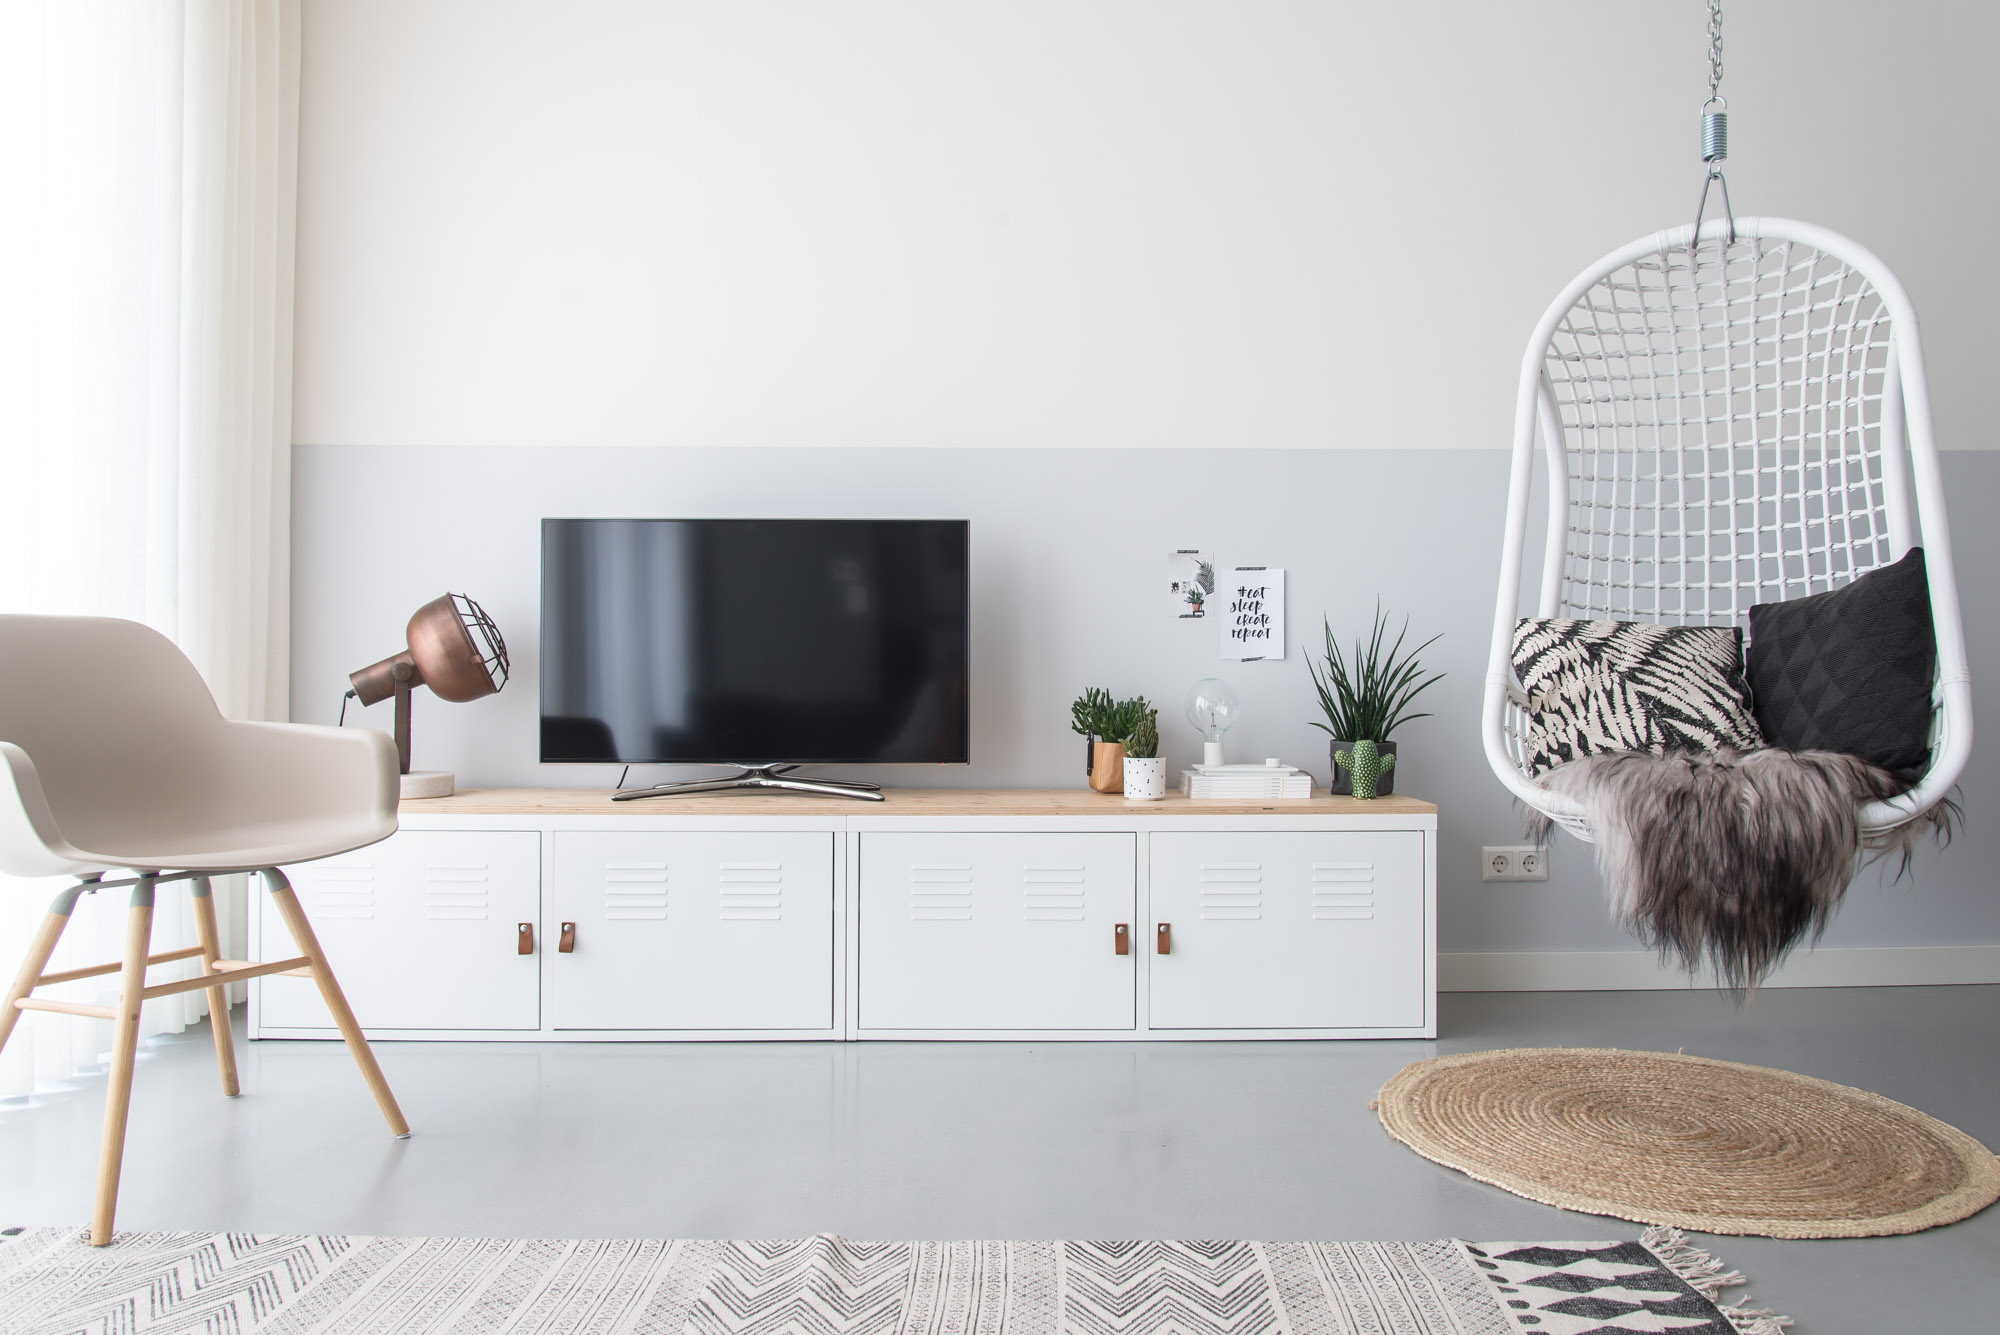 Tv Kasten Ikea Ikea Hack: Tv-meubel Ikea Ps Kast | Remade With Love